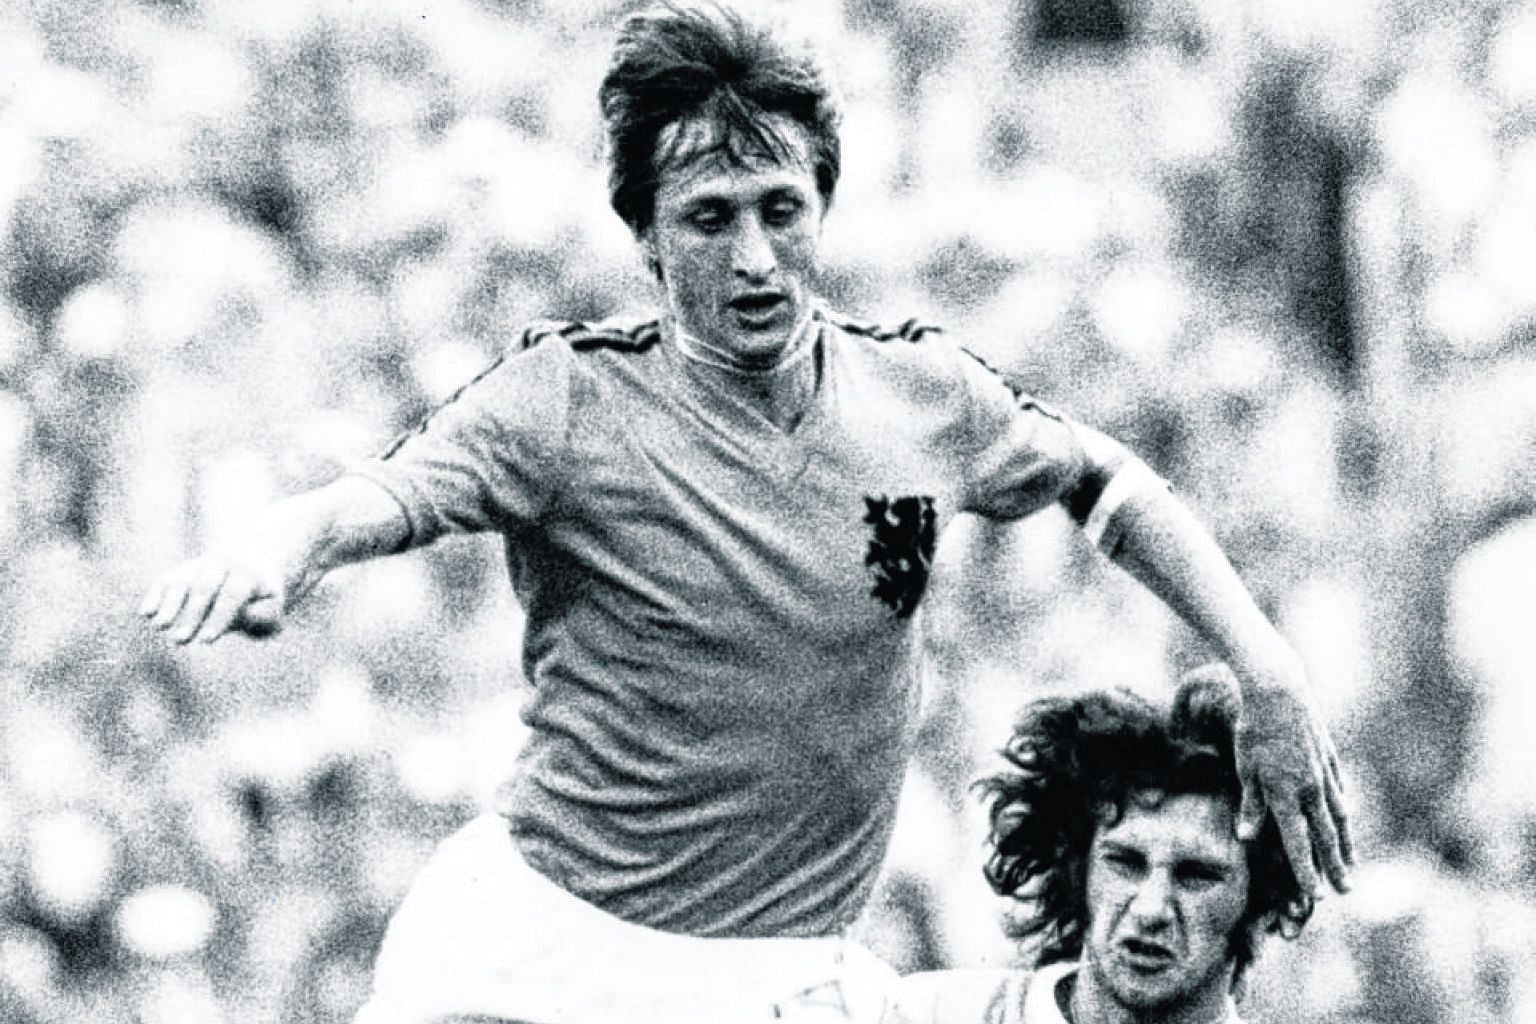 Johan Cruyff skipping past Fernando Morena during the Netherlands' 2-0 win over Uruguay in the 1974 World Cup in Hanover. The Dutch lost the final to hosts West Germany and again in the final four years later to hosts Argentina.